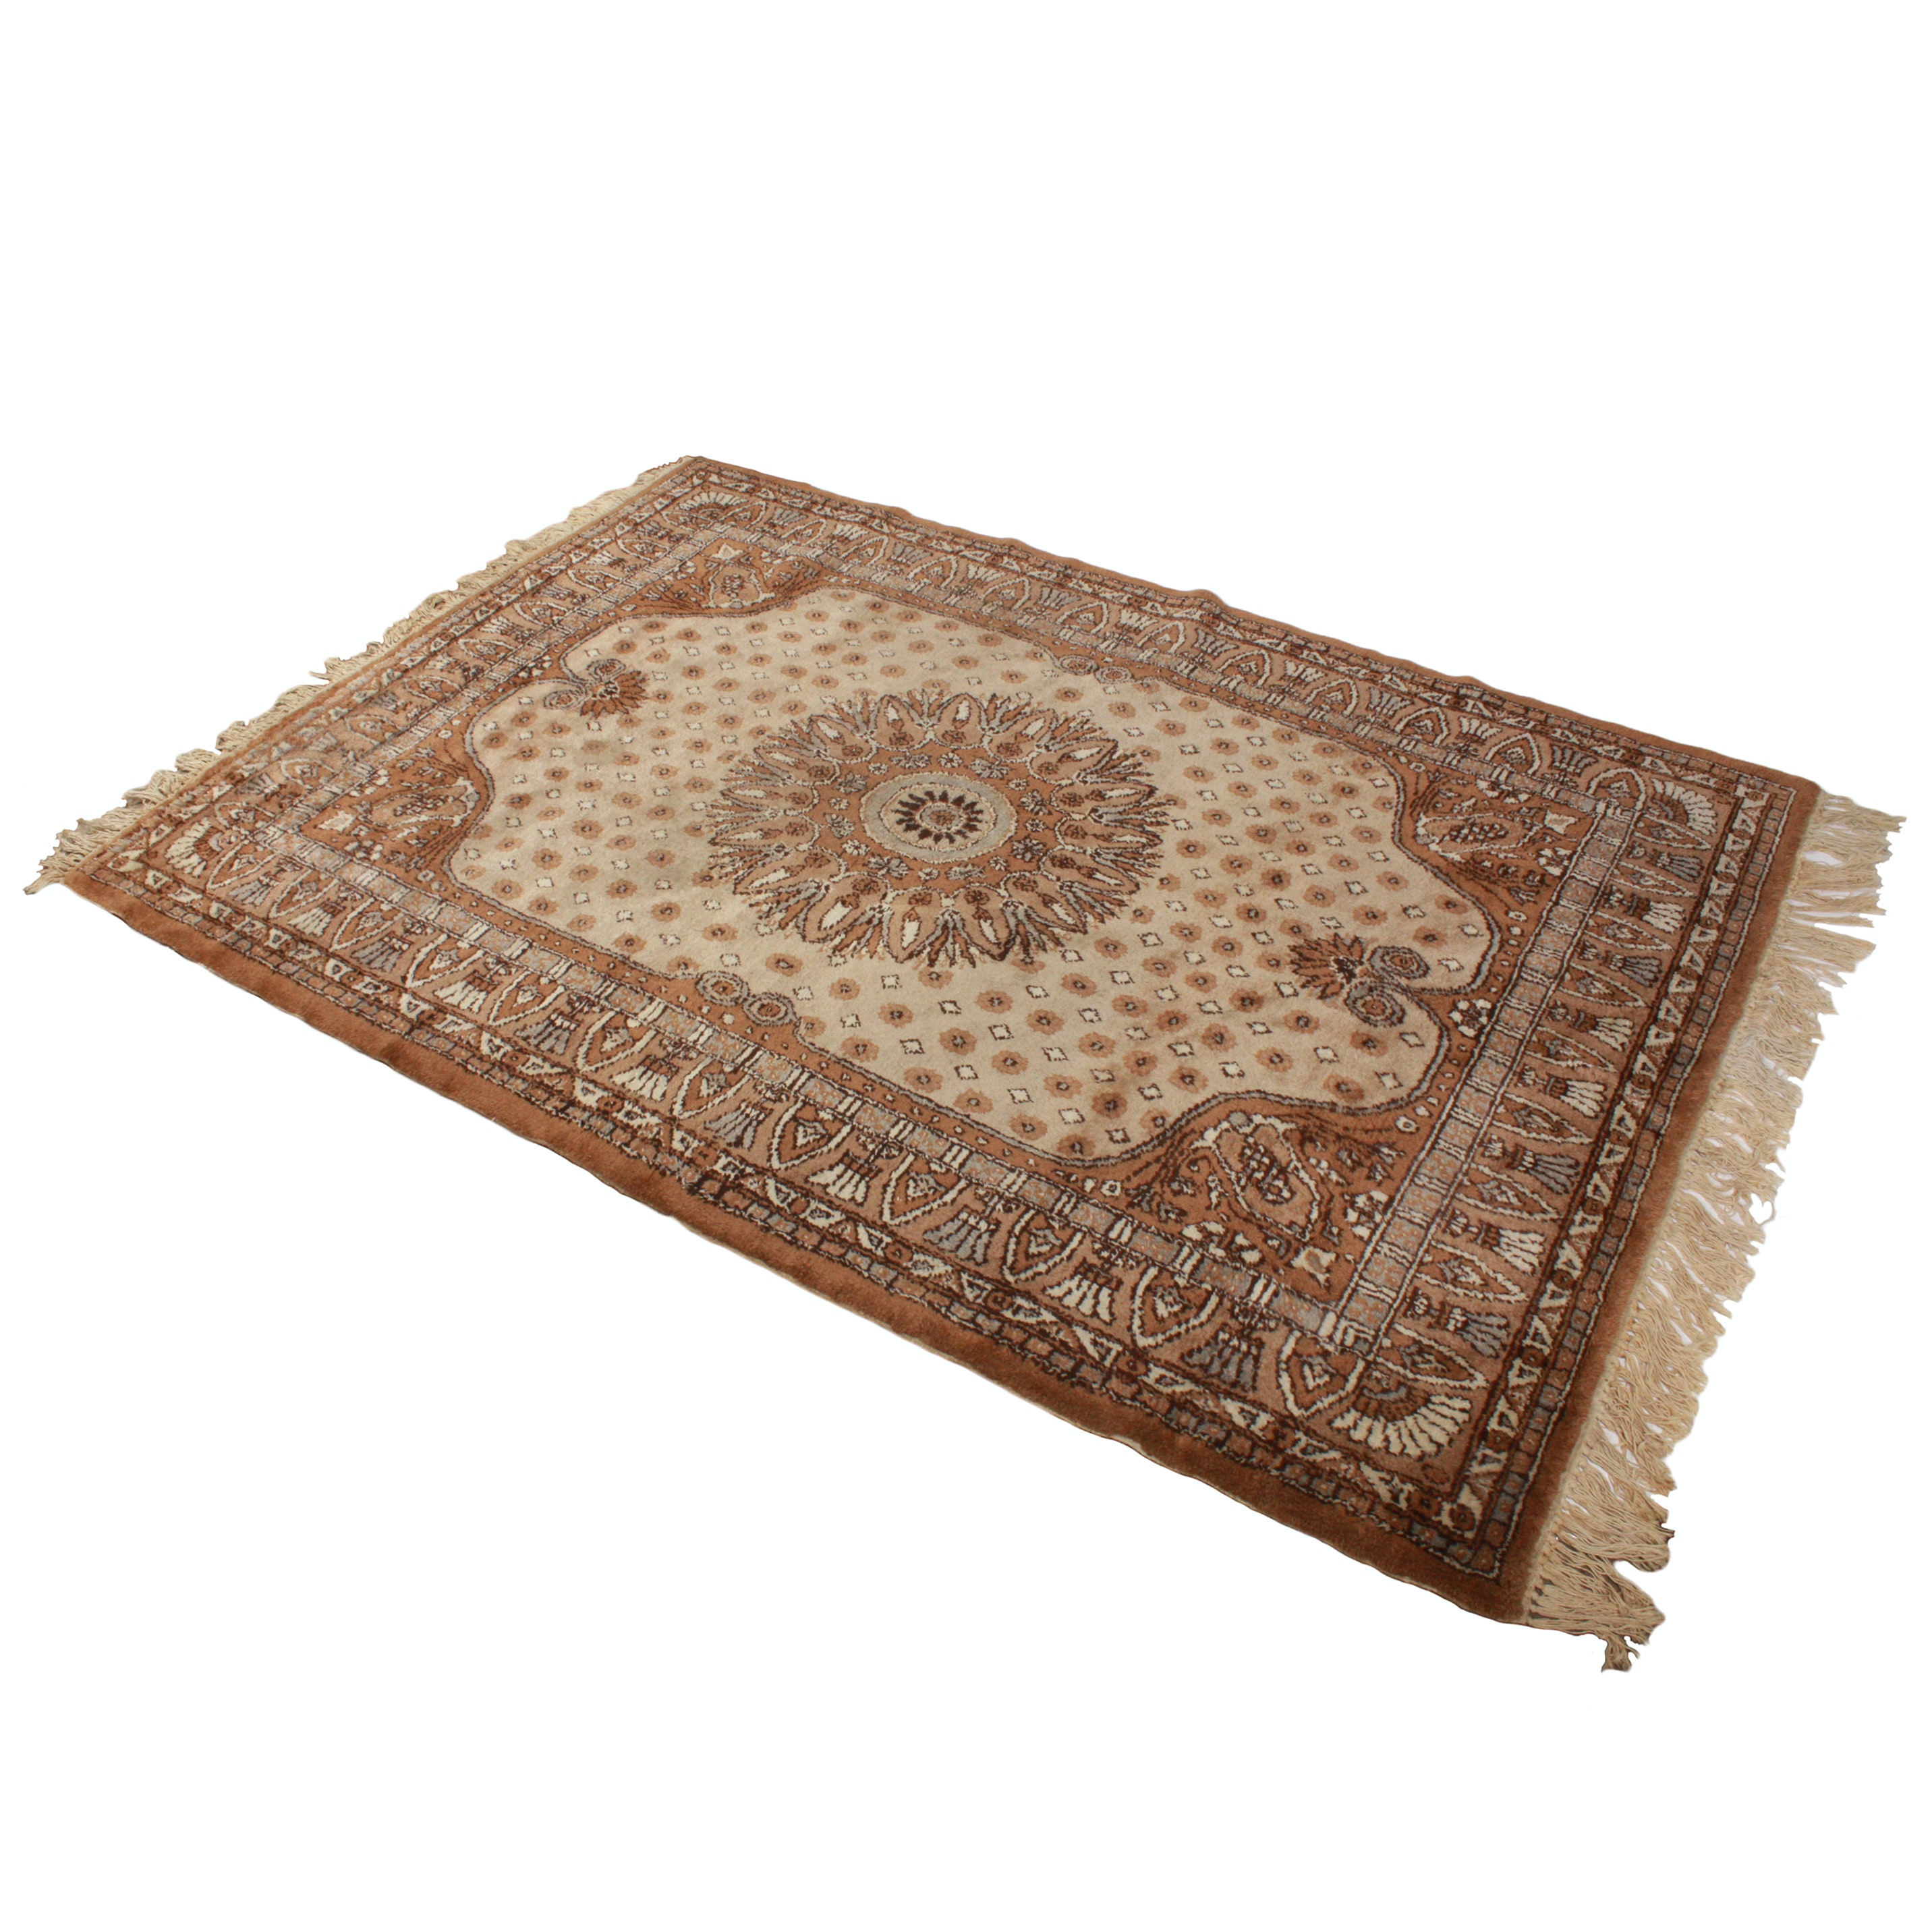 Hand-Knotted Turkish Area Rug